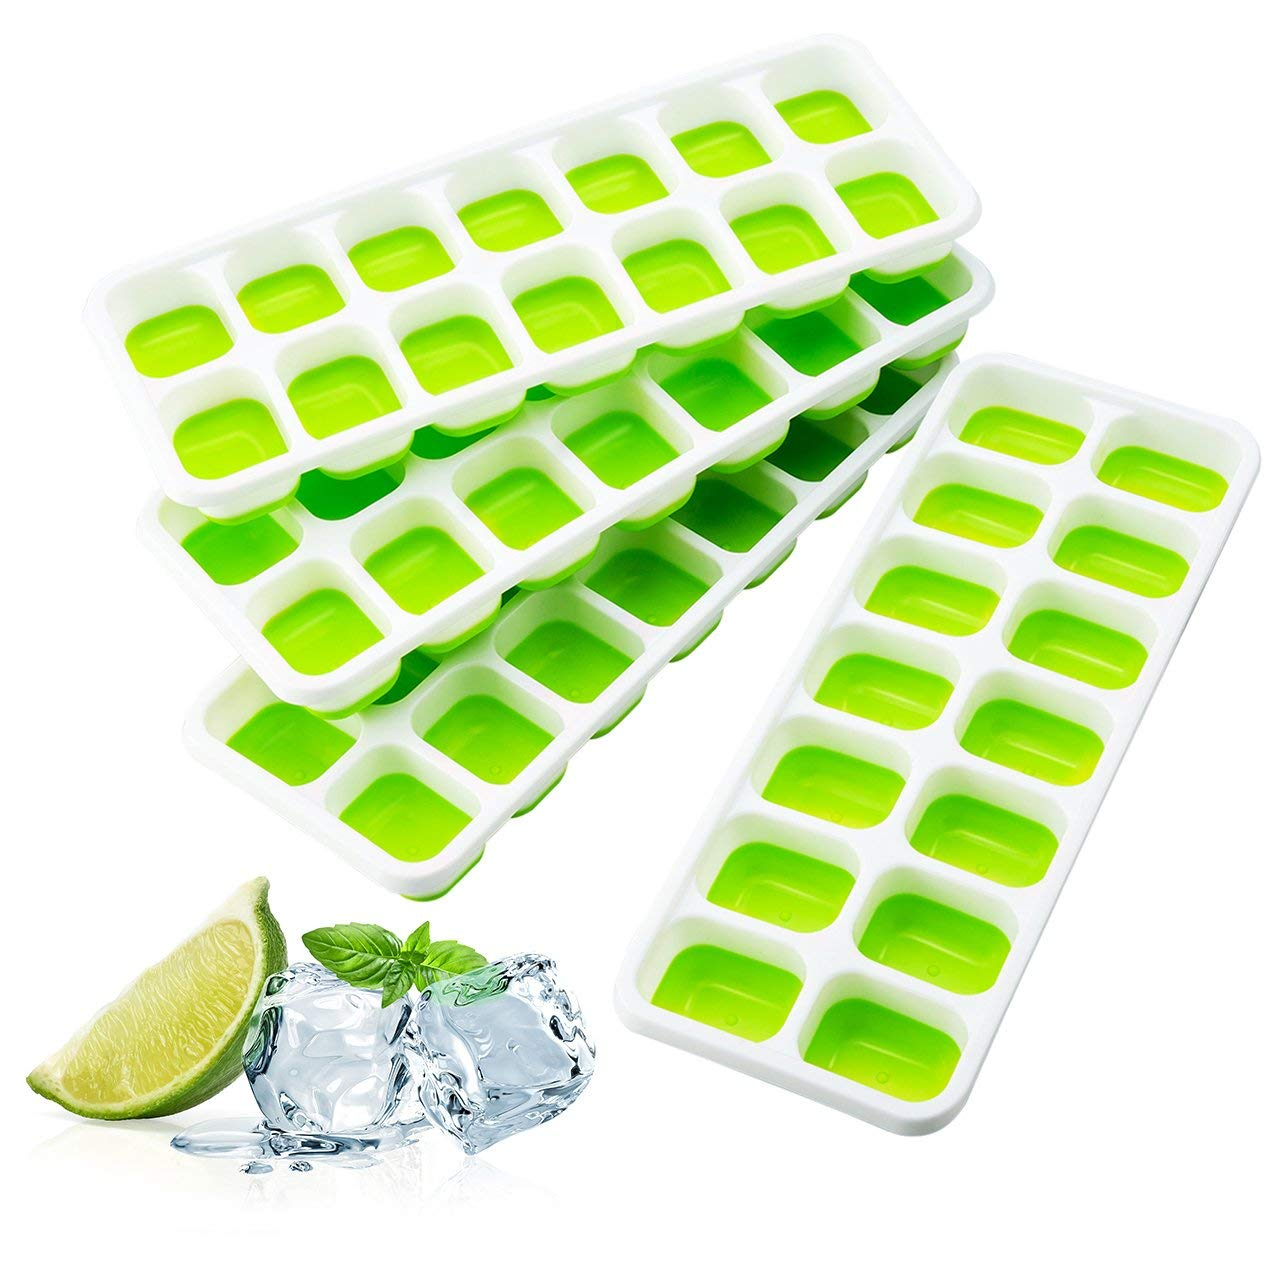 Ice Cube Trays, TOPELEK Easy-Release TPE Trays with Spill-Resistant Lid, LFGB/FDA Certified and BPA Free, 14 Cubes, Stackable and Dishwasher Safe